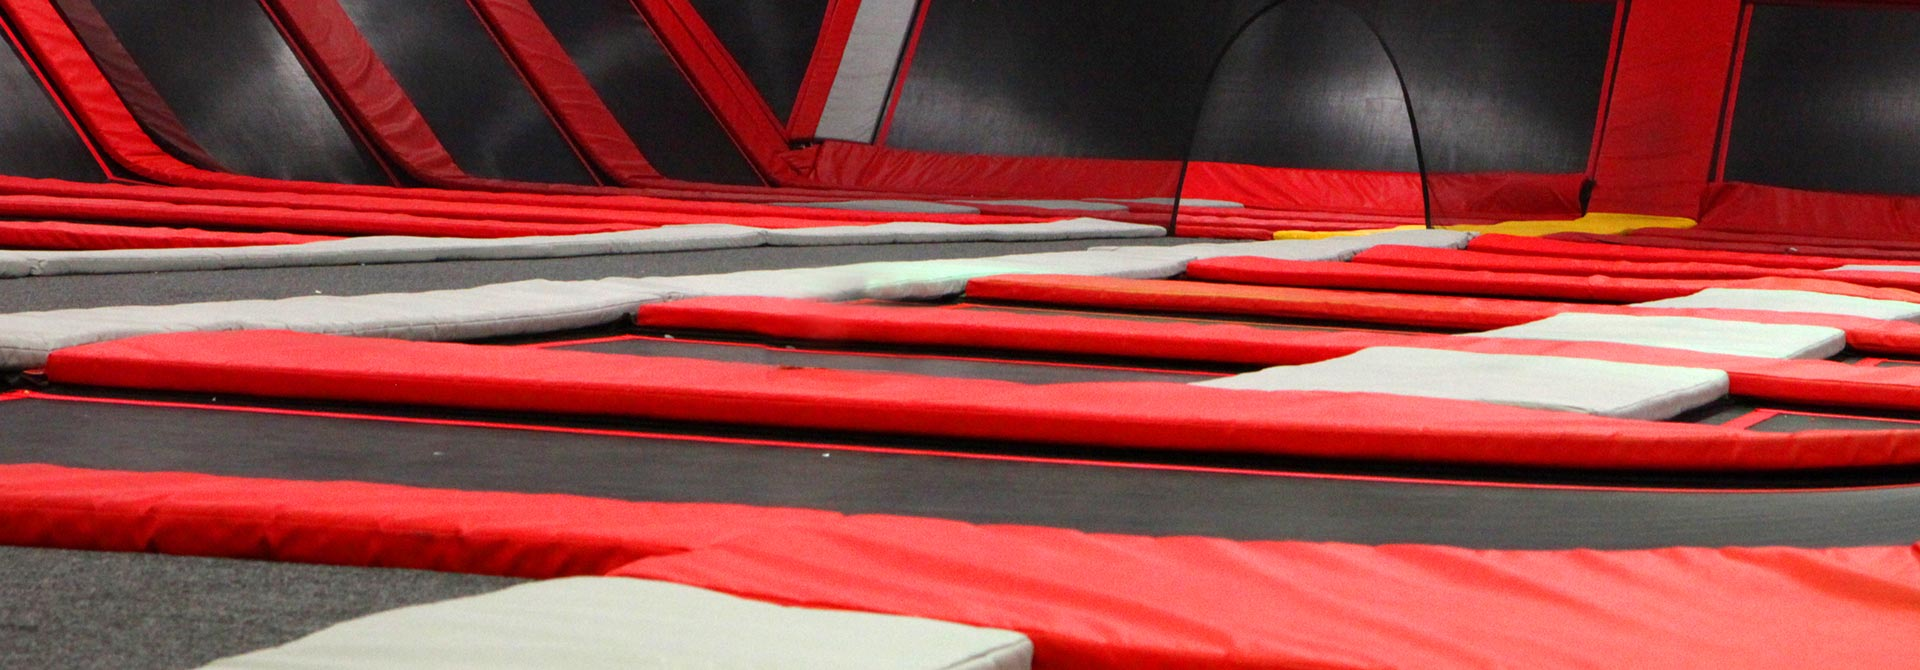 Inside a Local Trampoline Park | Virginia Trampoline Park Accident Attorneys